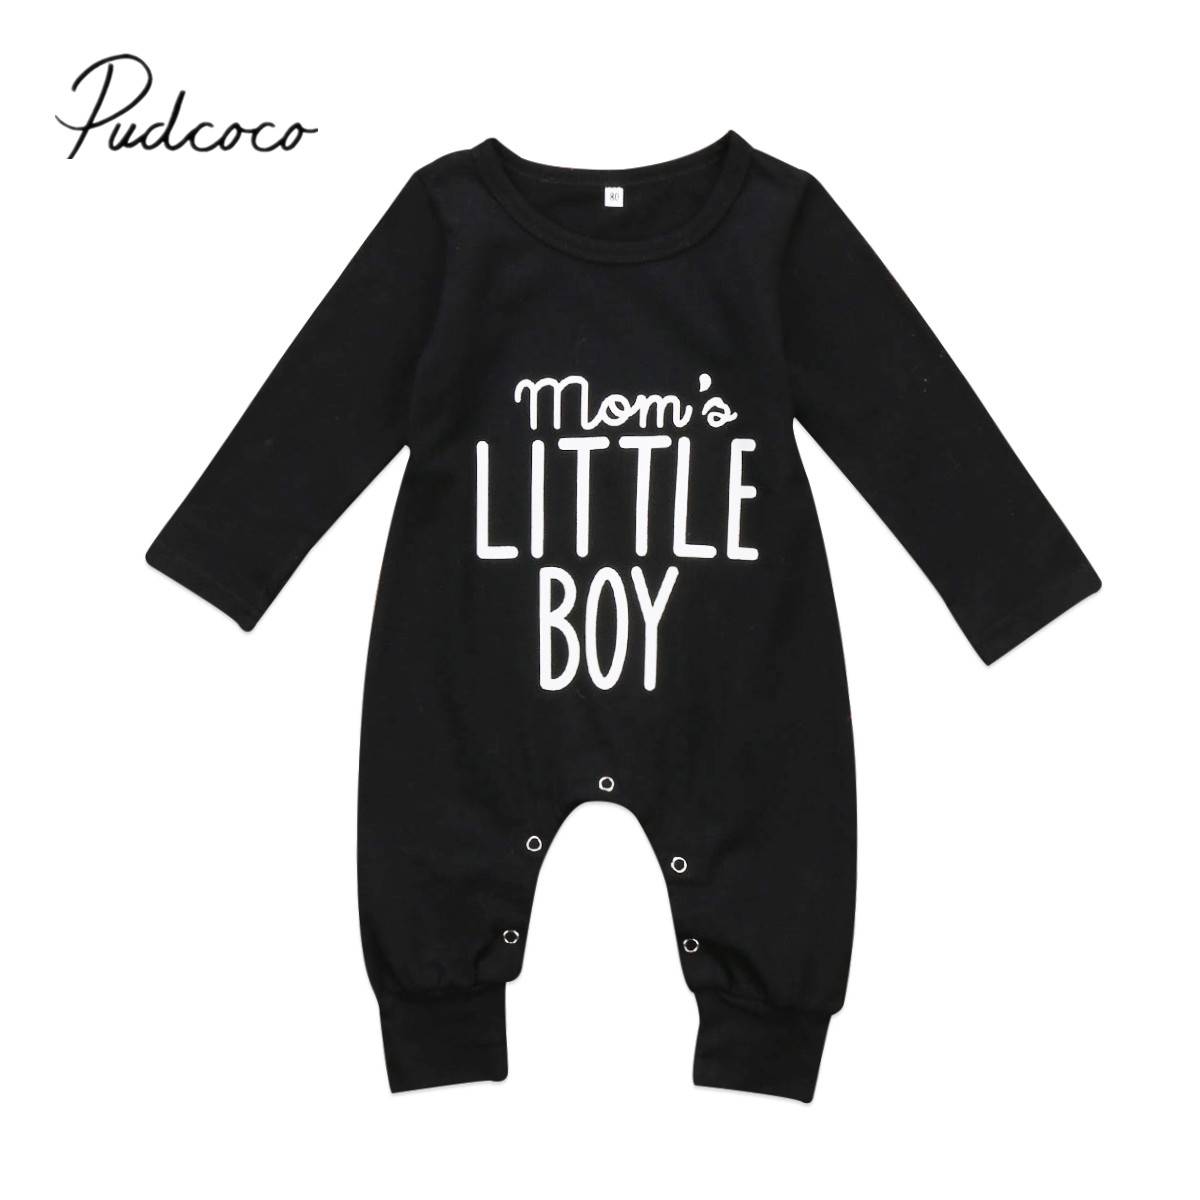 Newborn Kids Jumpsuit Deep in Thought Black Toddler Jumpsuit